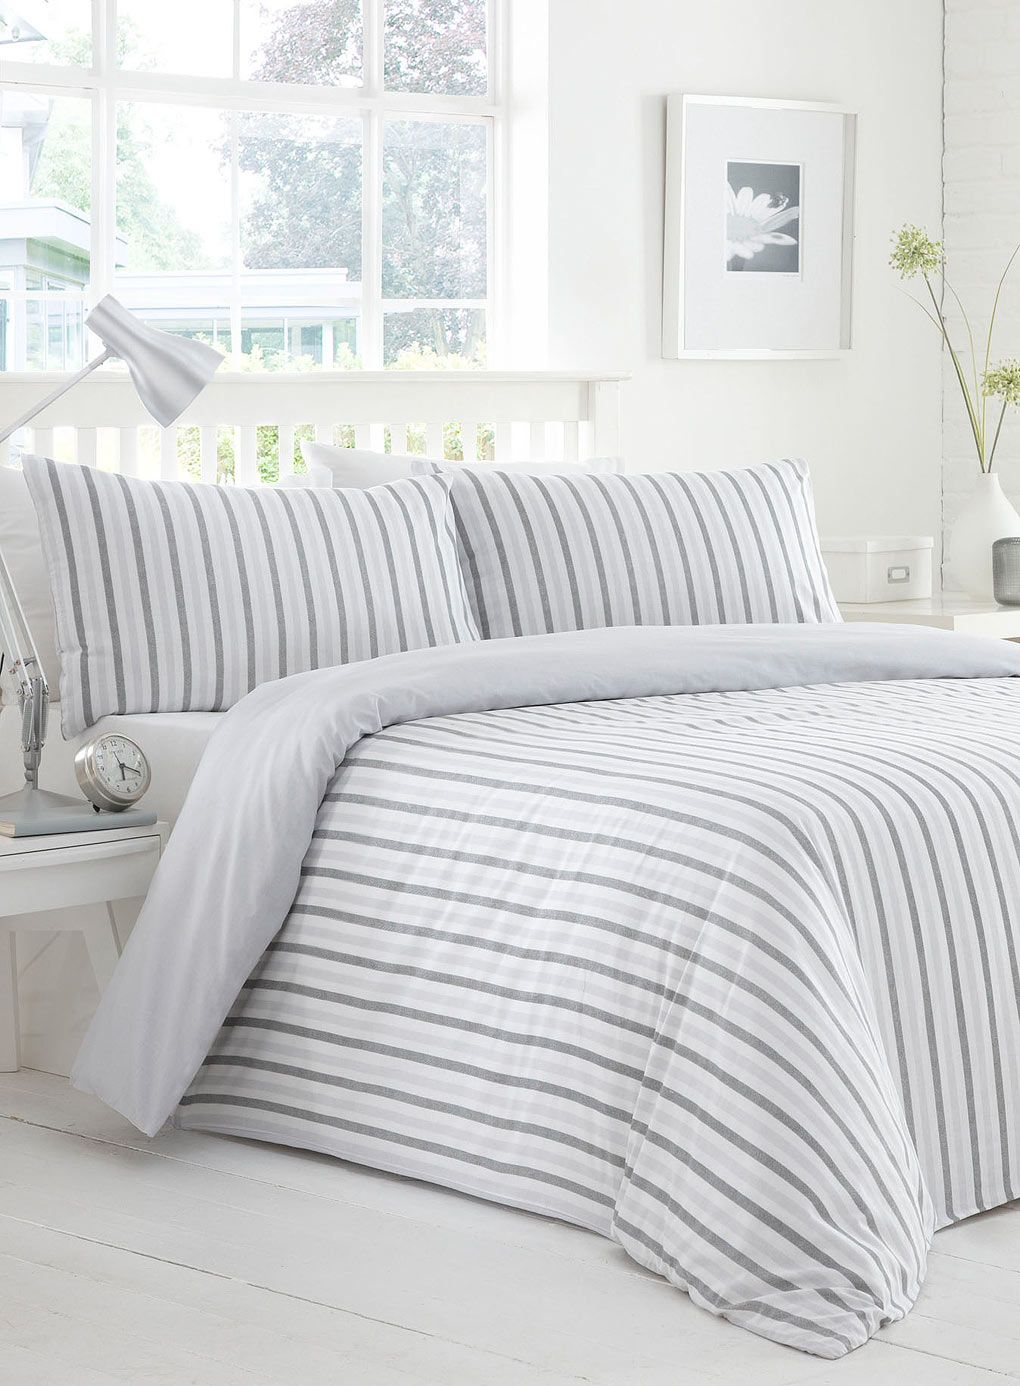 sets duvet striped gray with blue remarkable crib white queen stripe comforter and horizontal set black sheet bohemian for bath bedding covers